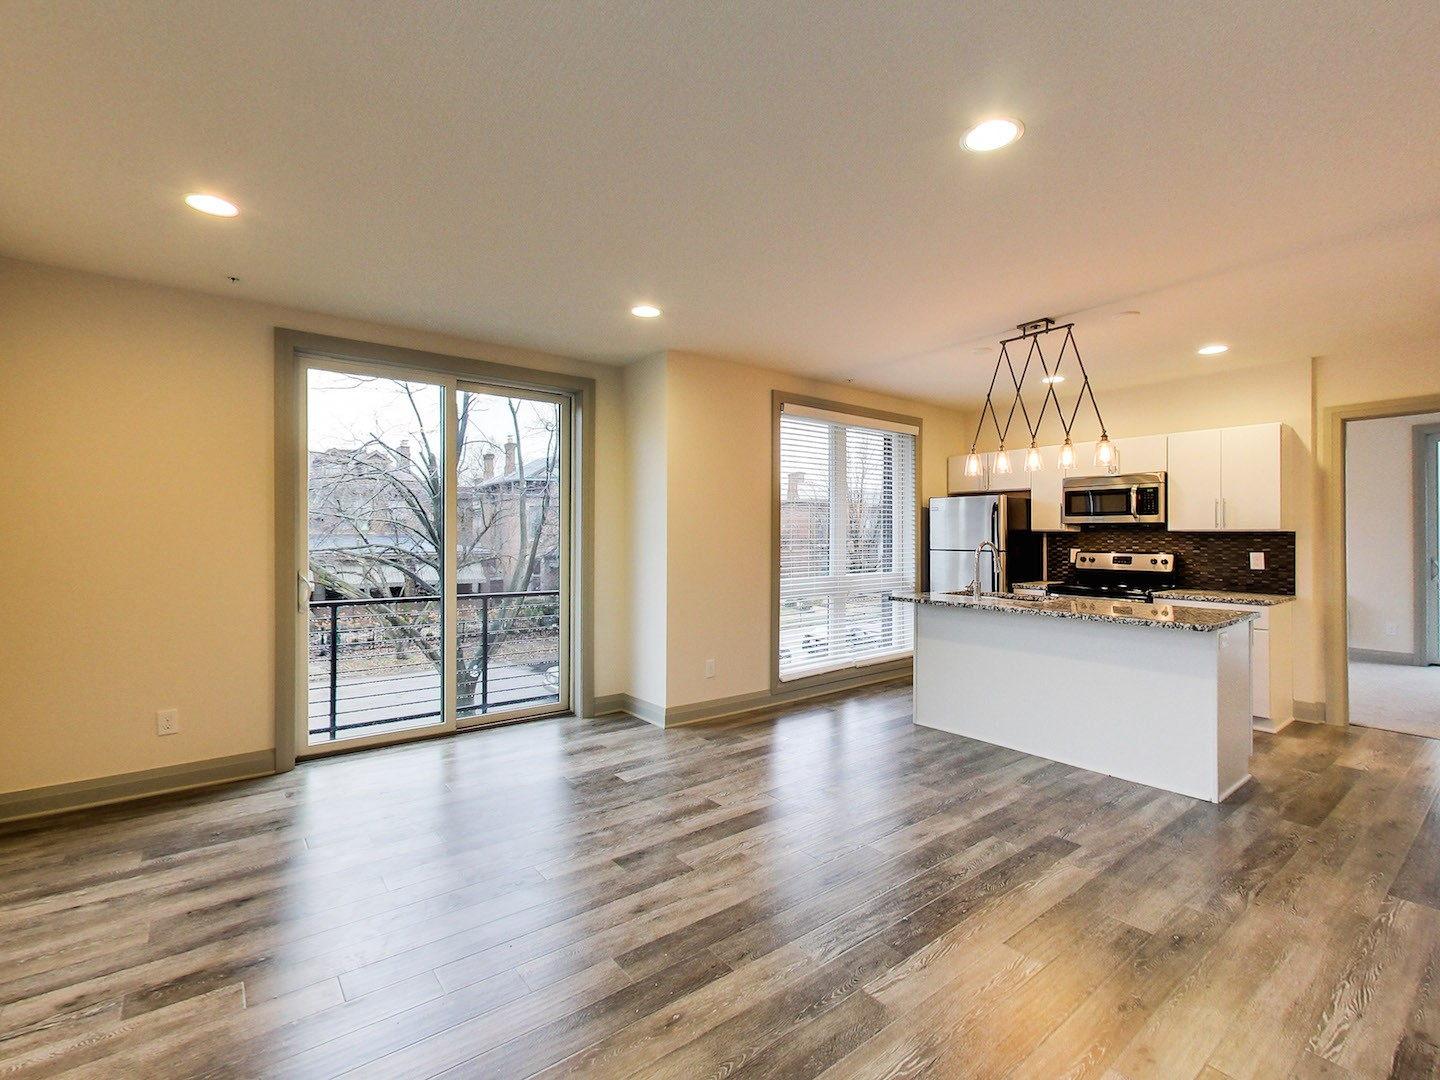 8-40-west-apartments-columbus-ohio-one-bedroom-living-room-and-kitchen